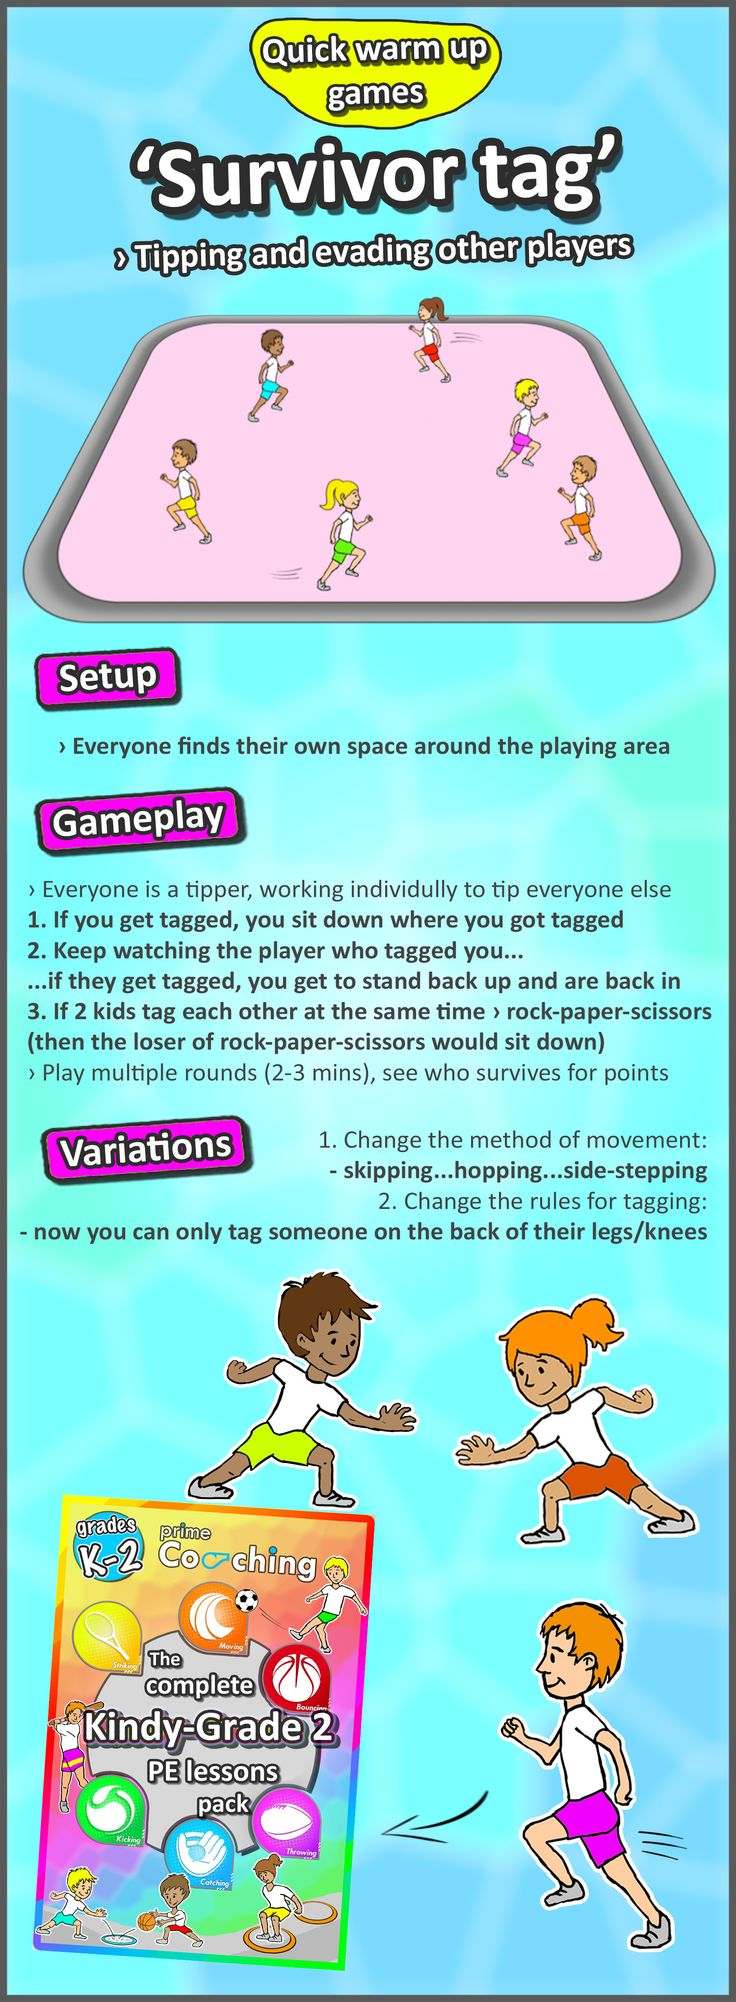 Tag/lesson plans - Kindergarten To Grade 2 Pe Games Complete Sport Skill And Games Pack 2017